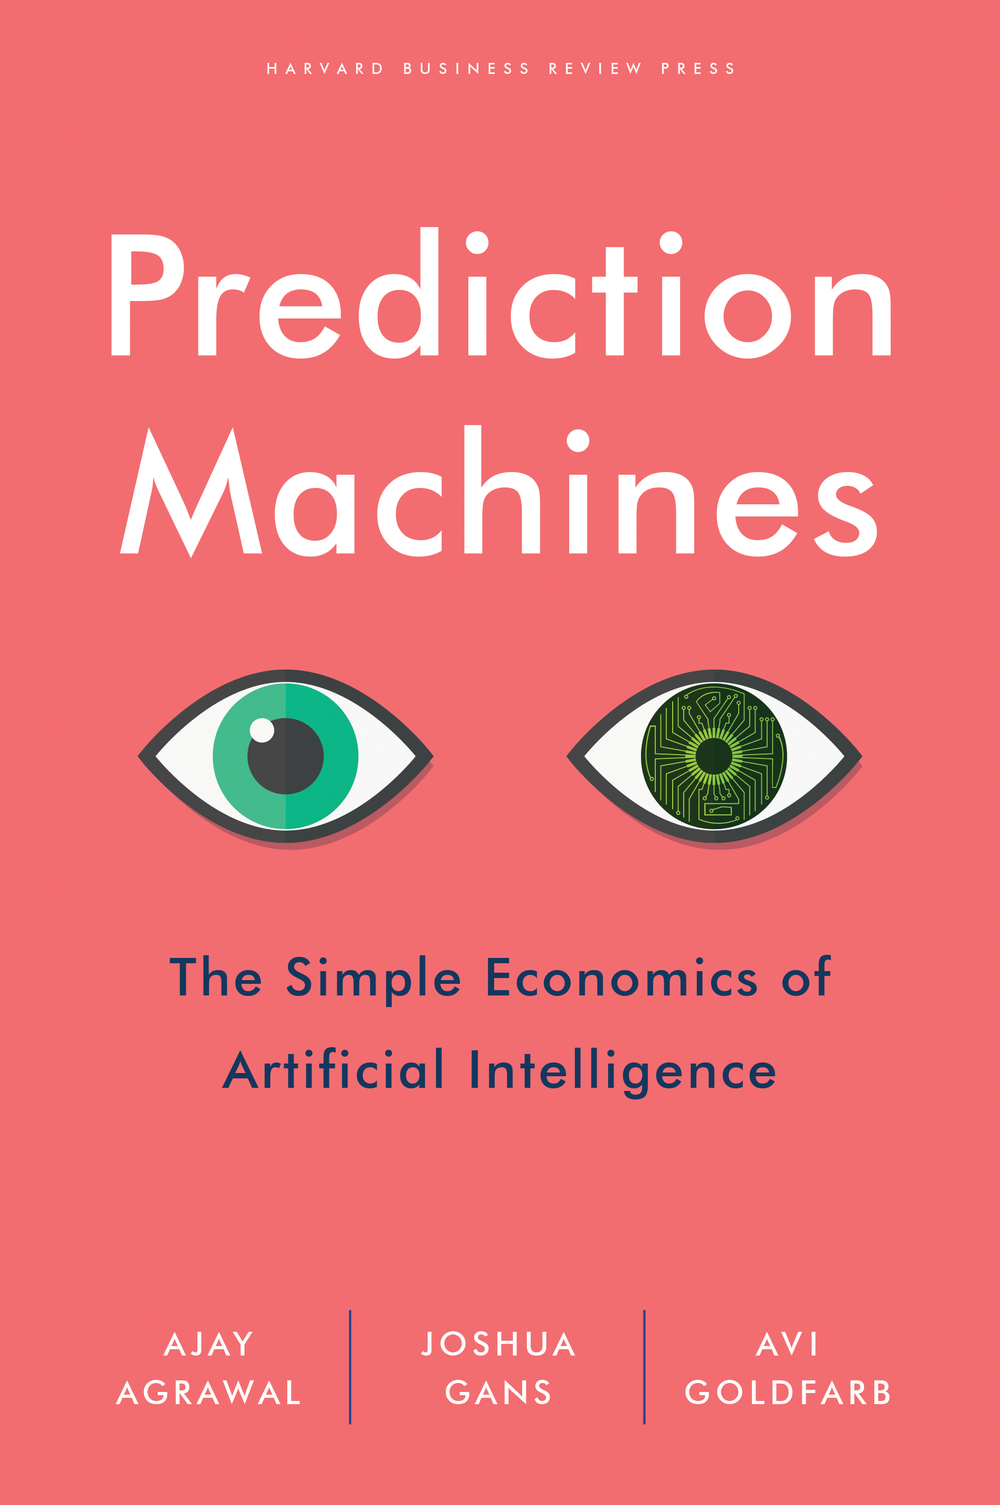 Prediction Machines - This book (to be published in April 2018 by Harvard Business Review Press) explores the simple economics of artificial intelligence.